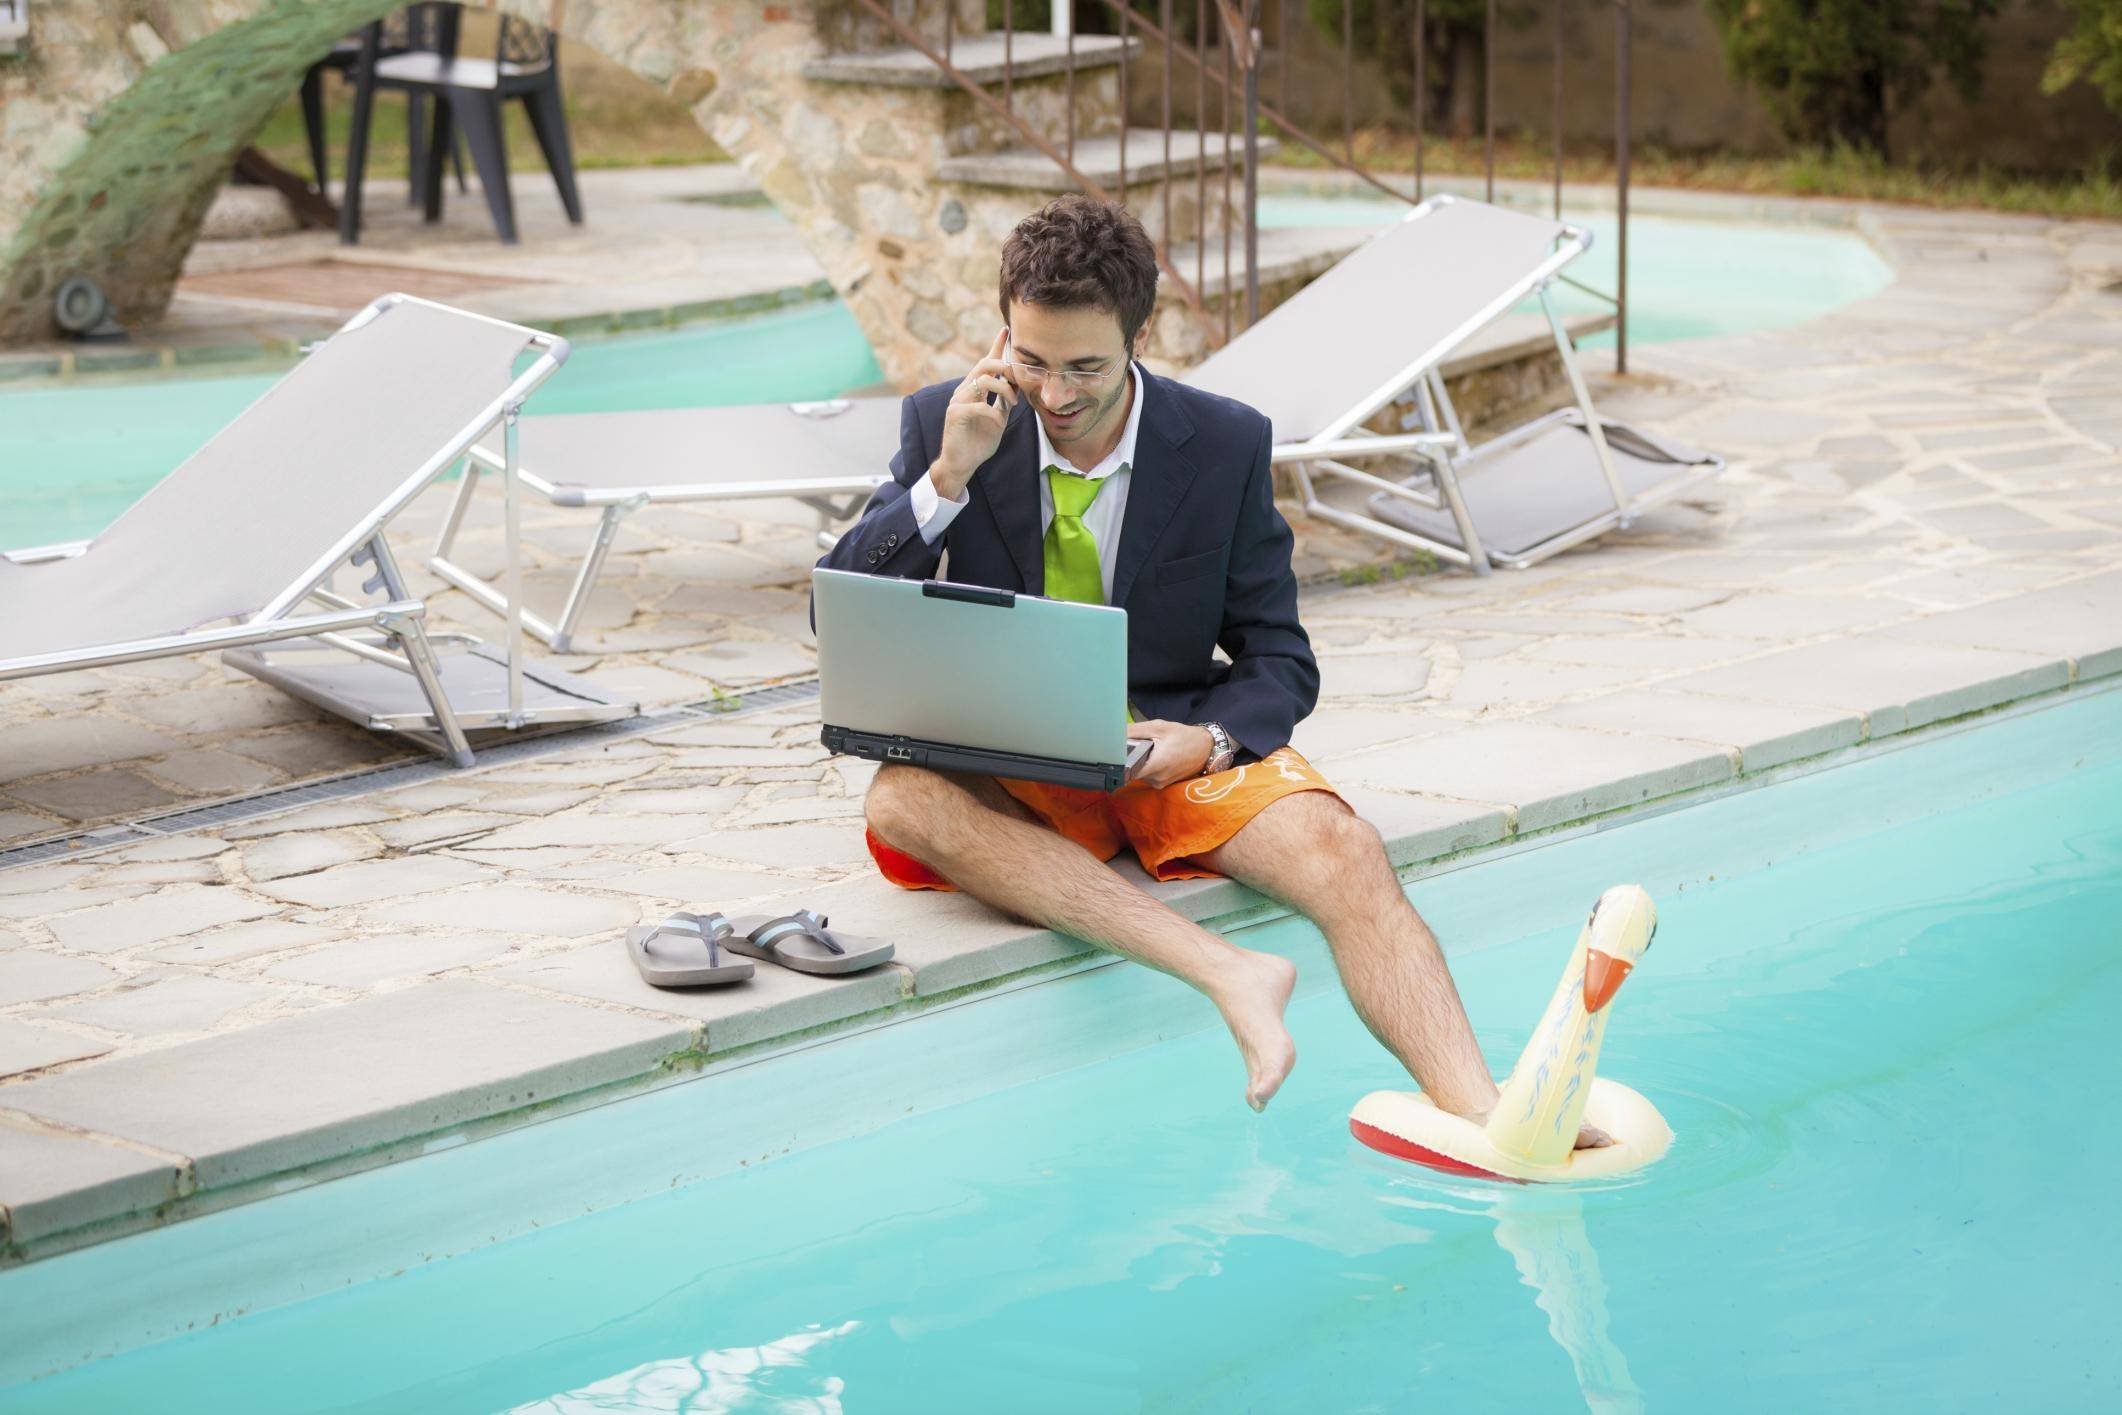 A survey shows many Americans don't use their vacation time. And even those that do sometimes take work emails and calls while on vacation.